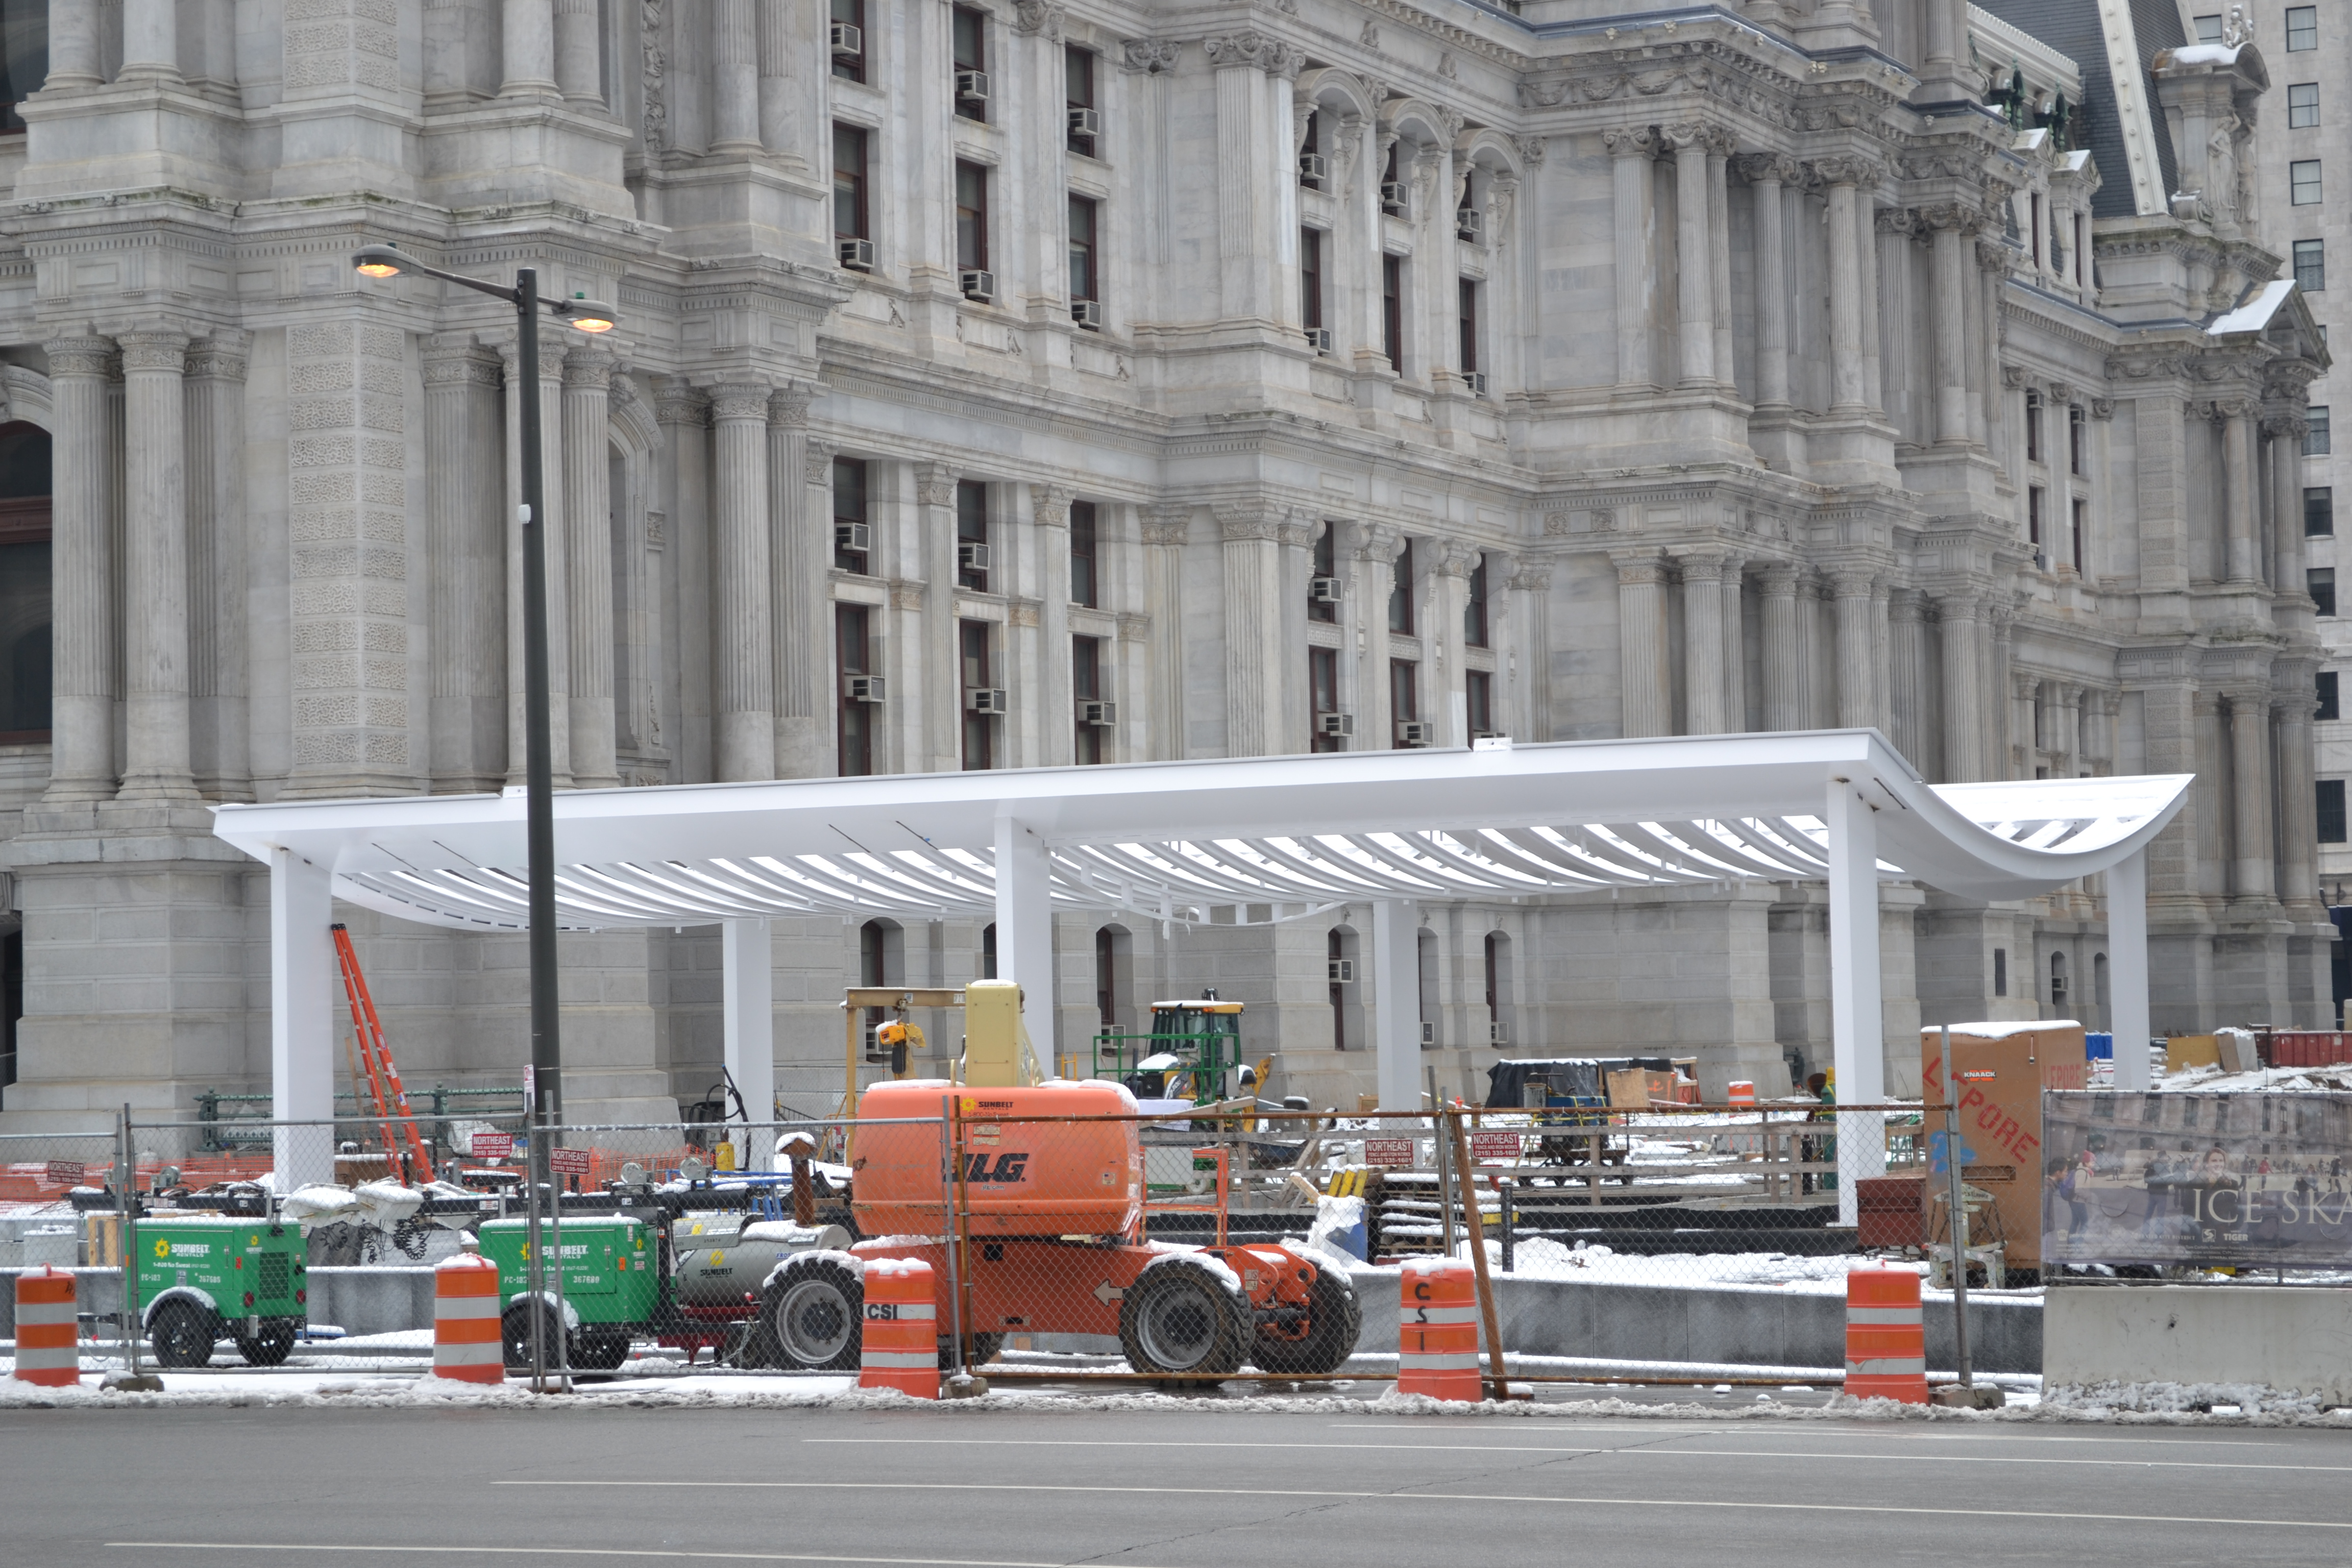 The white frame stands out against the gray backdrop of City Hall and the construction site